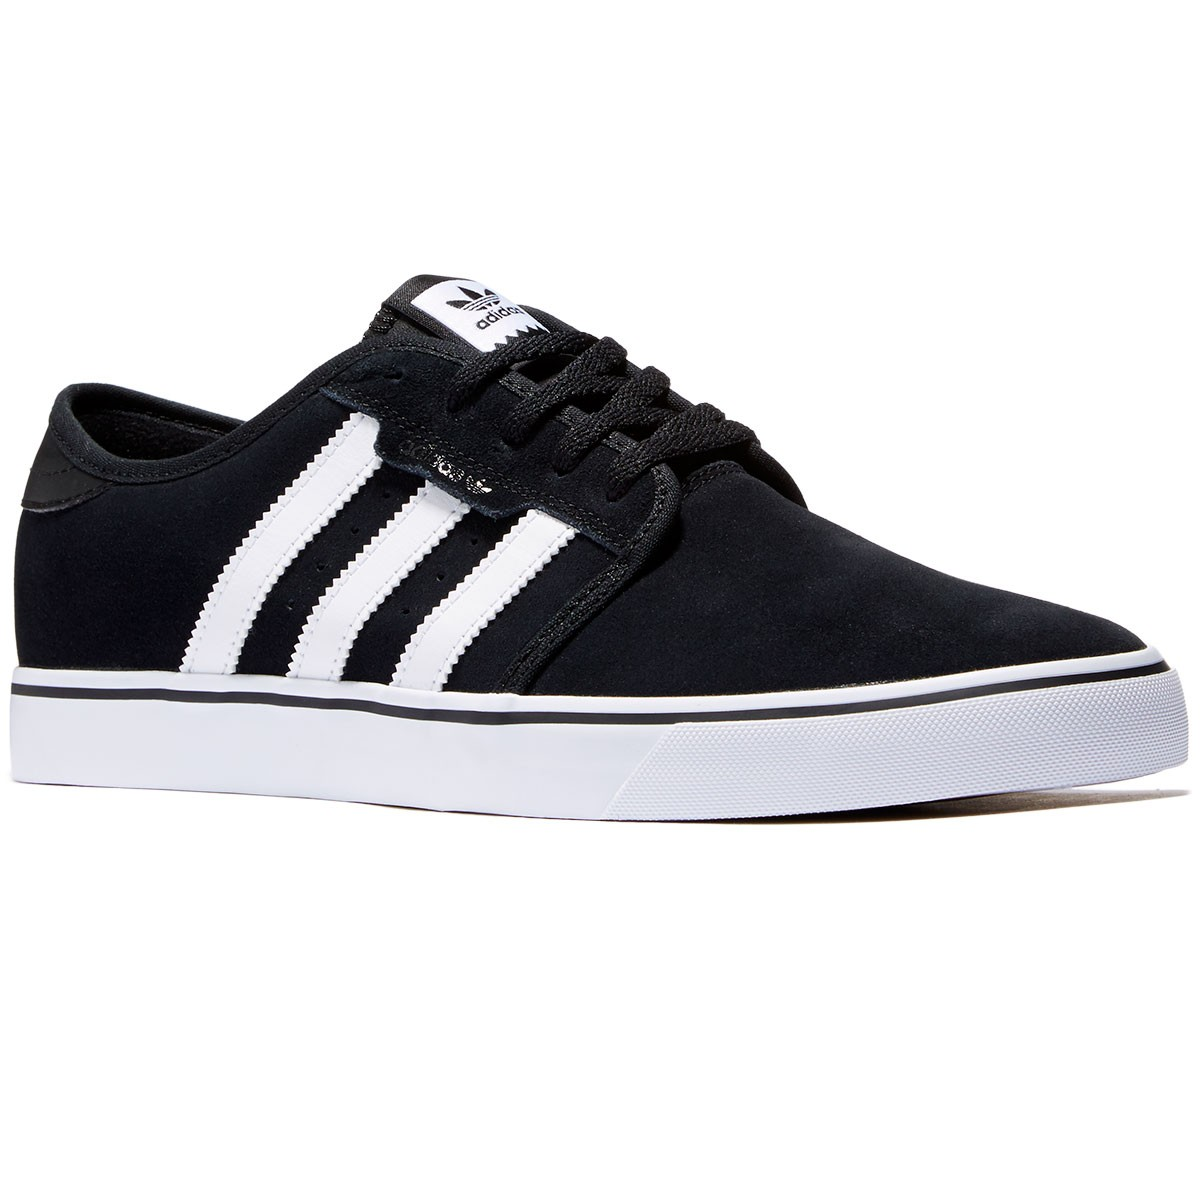 Adidas Seeley Shoes - Black/White/Black - 4.0